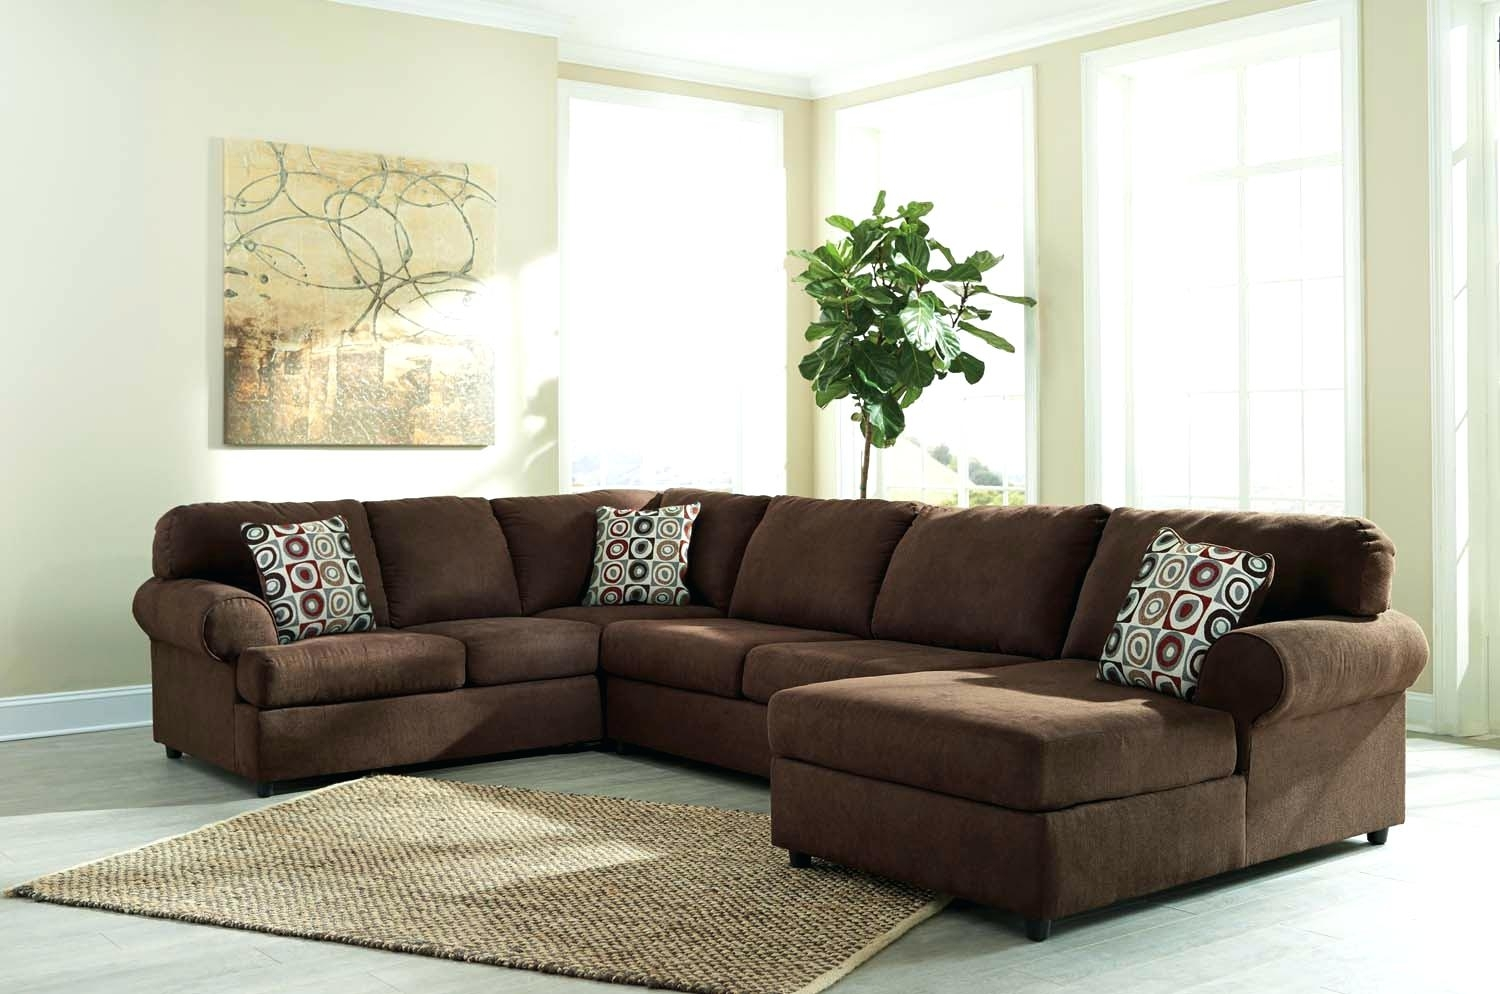 3 Piece Sectional Haven Blue Steel 3 Piece Sectional 3 Pc Reclining Throughout Haven Blue Steel 3 Piece Sectionals (View 5 of 25)